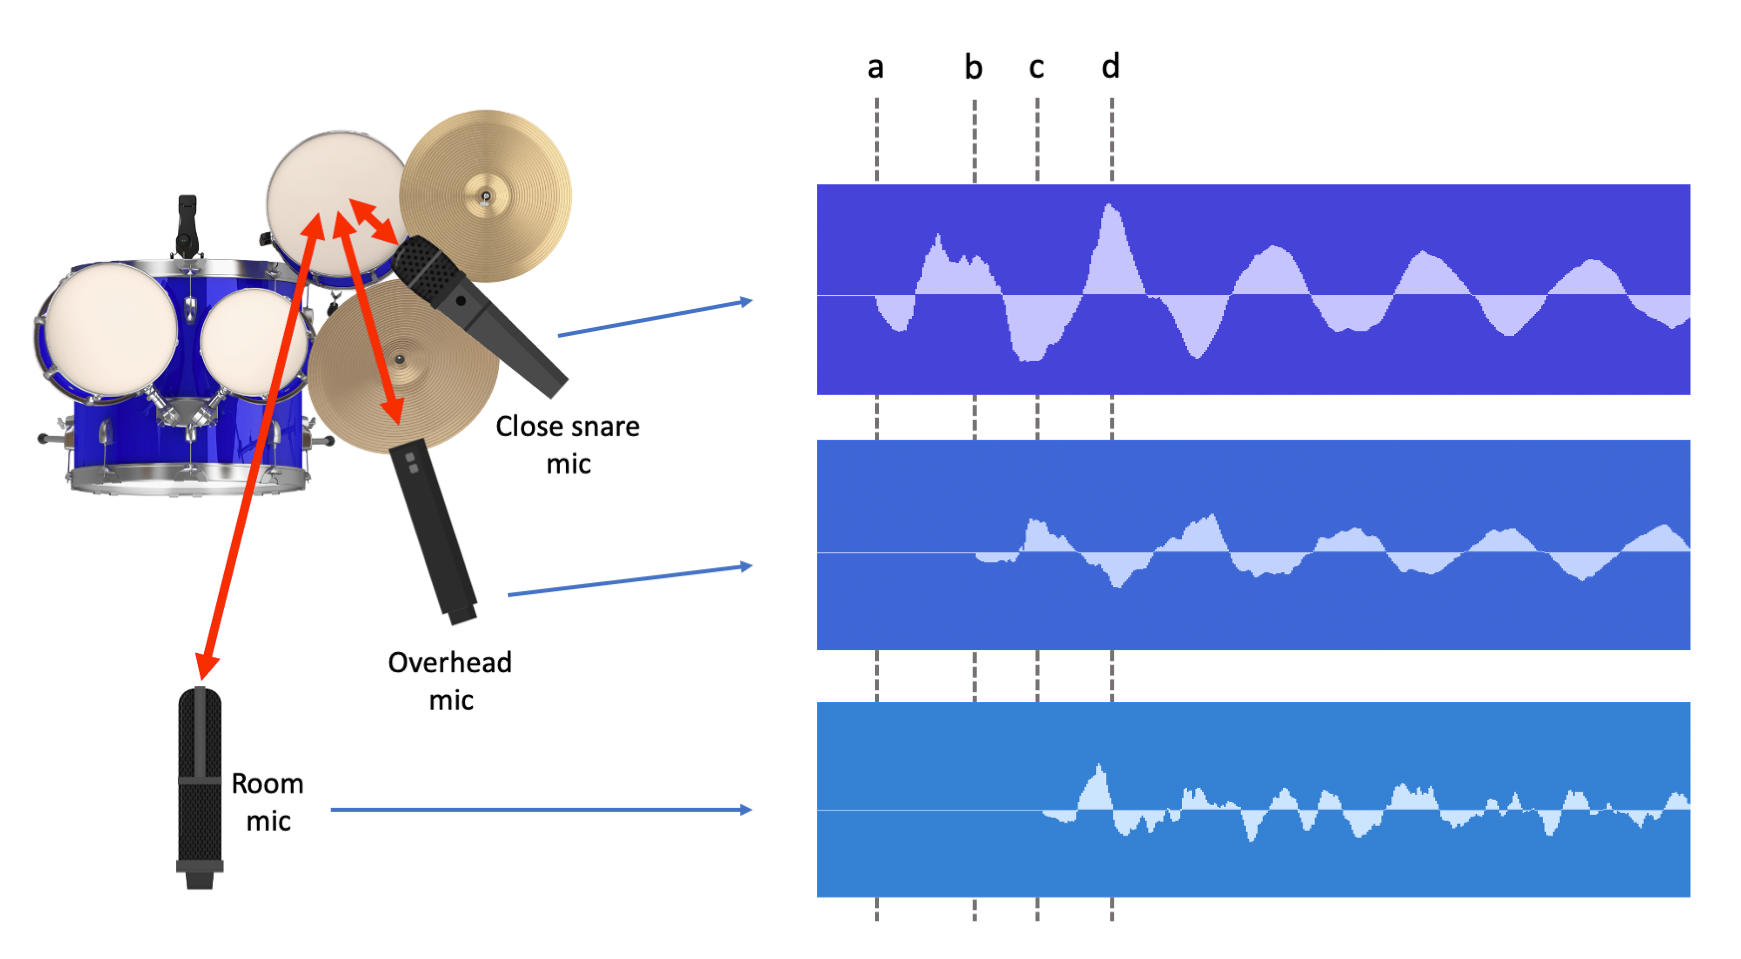 Figure 14.5. Microphones at different distances from the snare drum on a drum kit